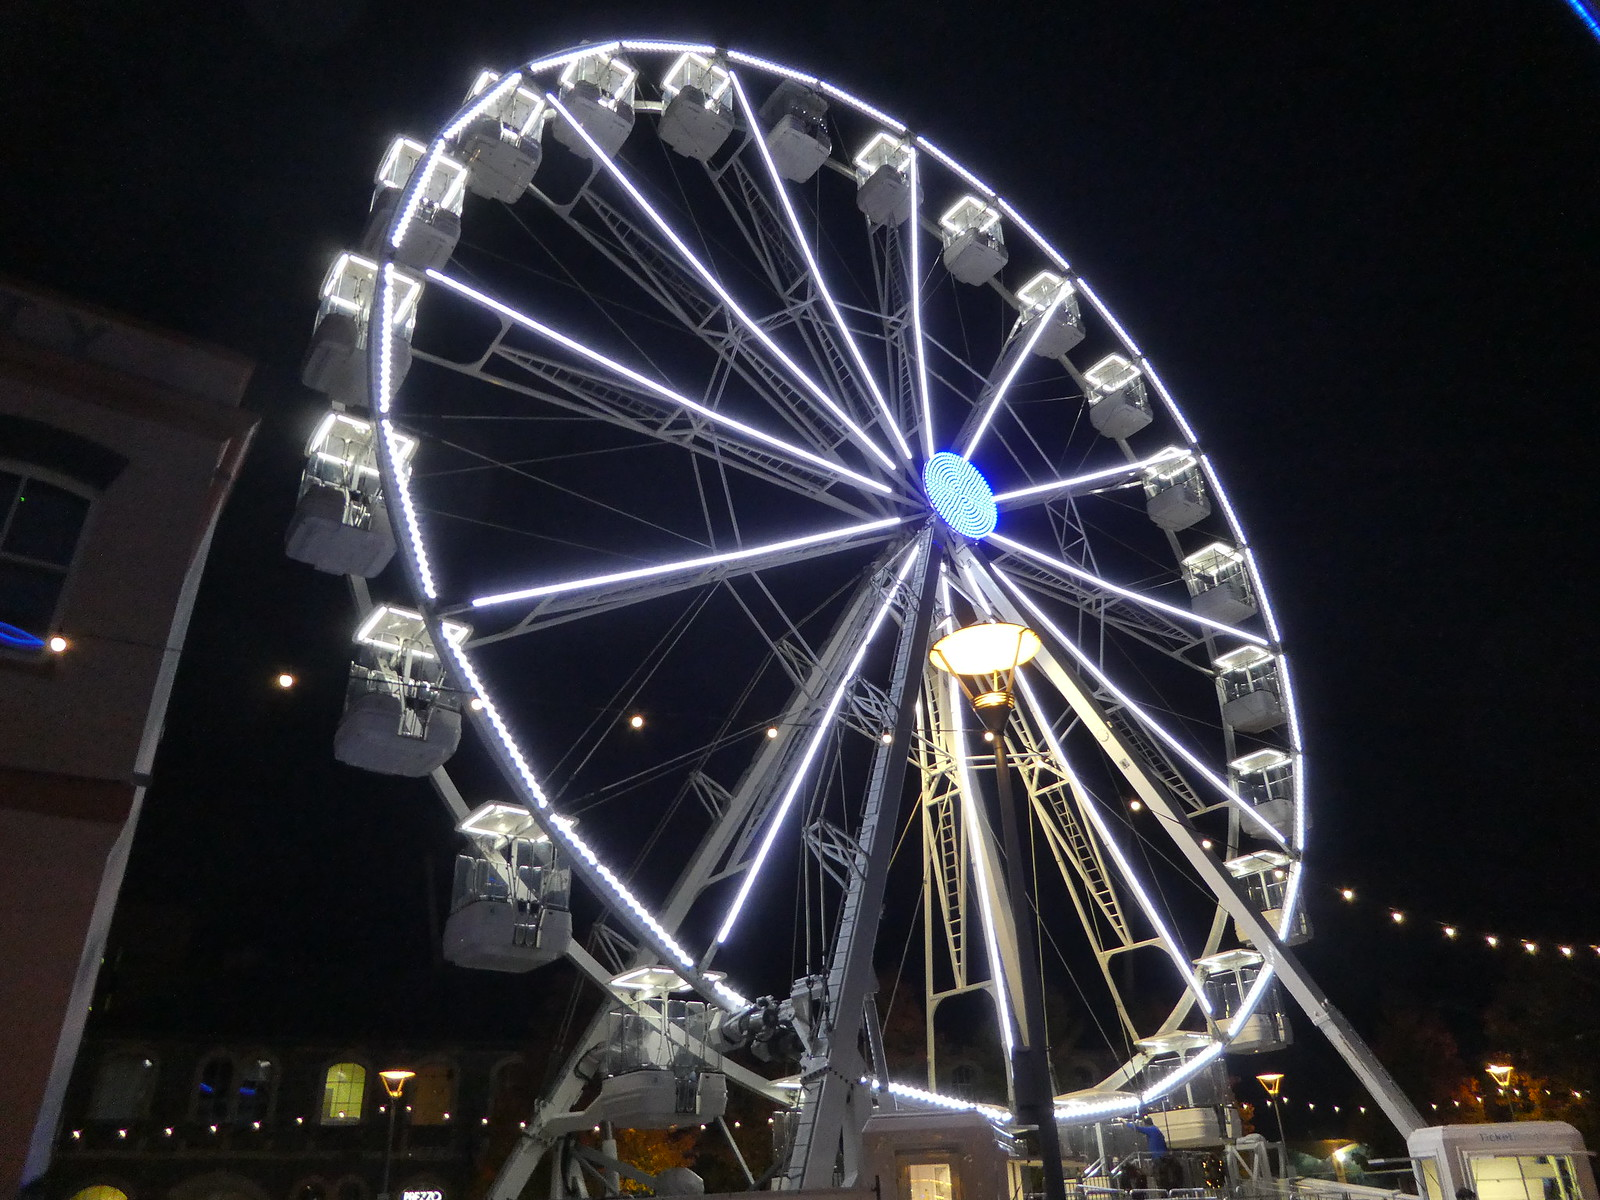 Sky View Wheel, Bristol